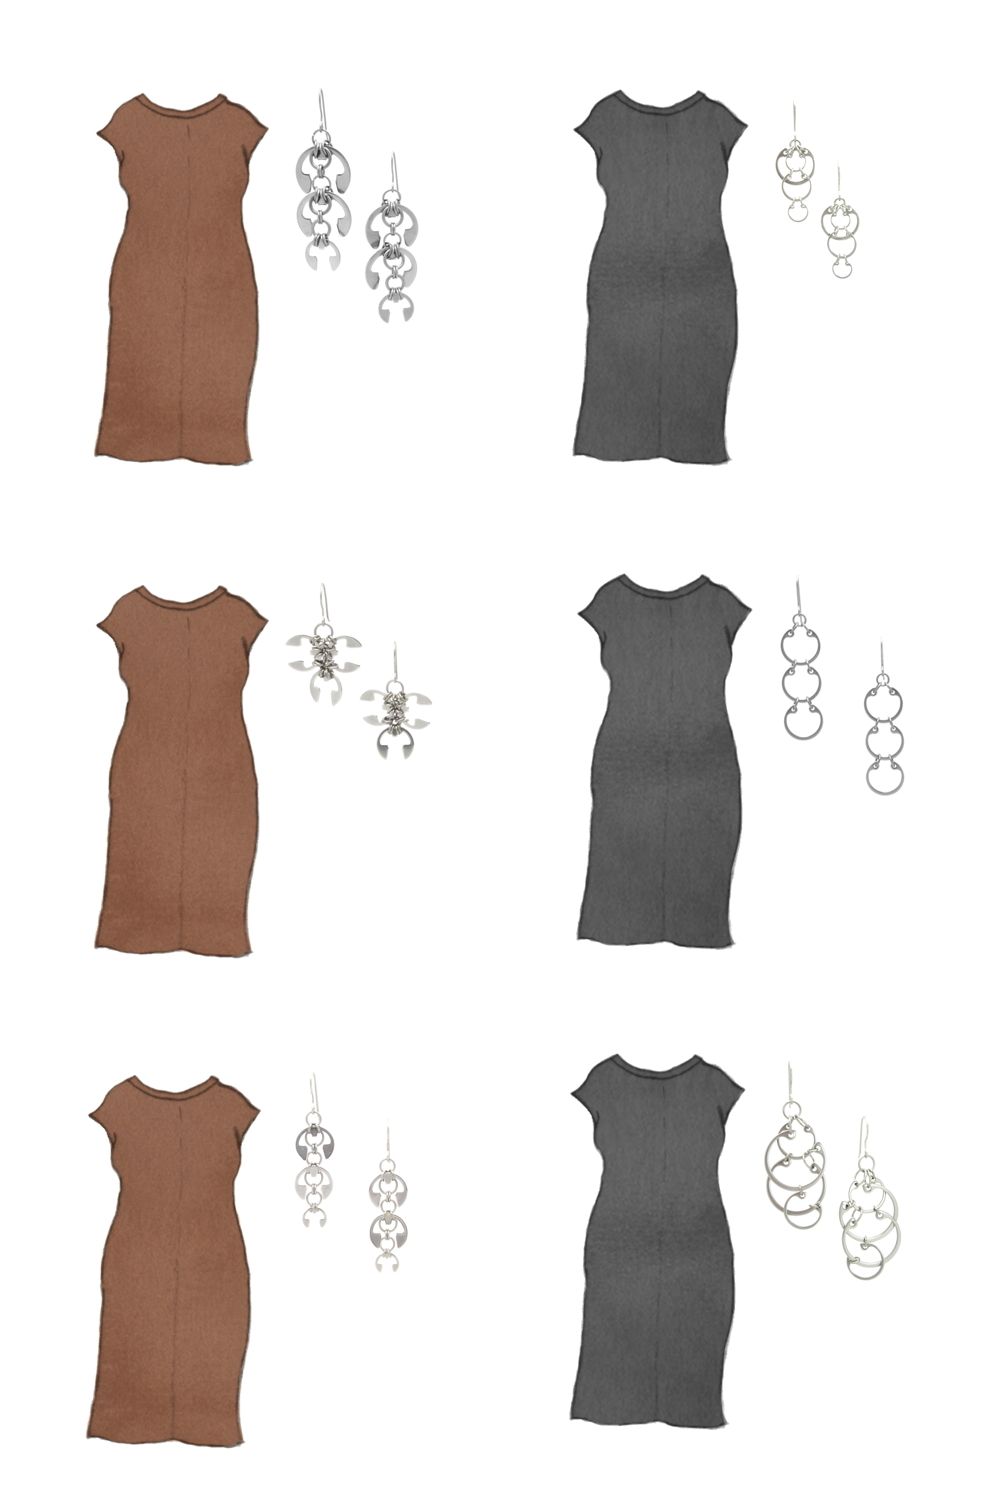 Style sketch of Everlane's Luxe Cotton Side-Slit Tee Dress in brown and black, with 6 styles of Wraptillion's modern chainmail earrings.